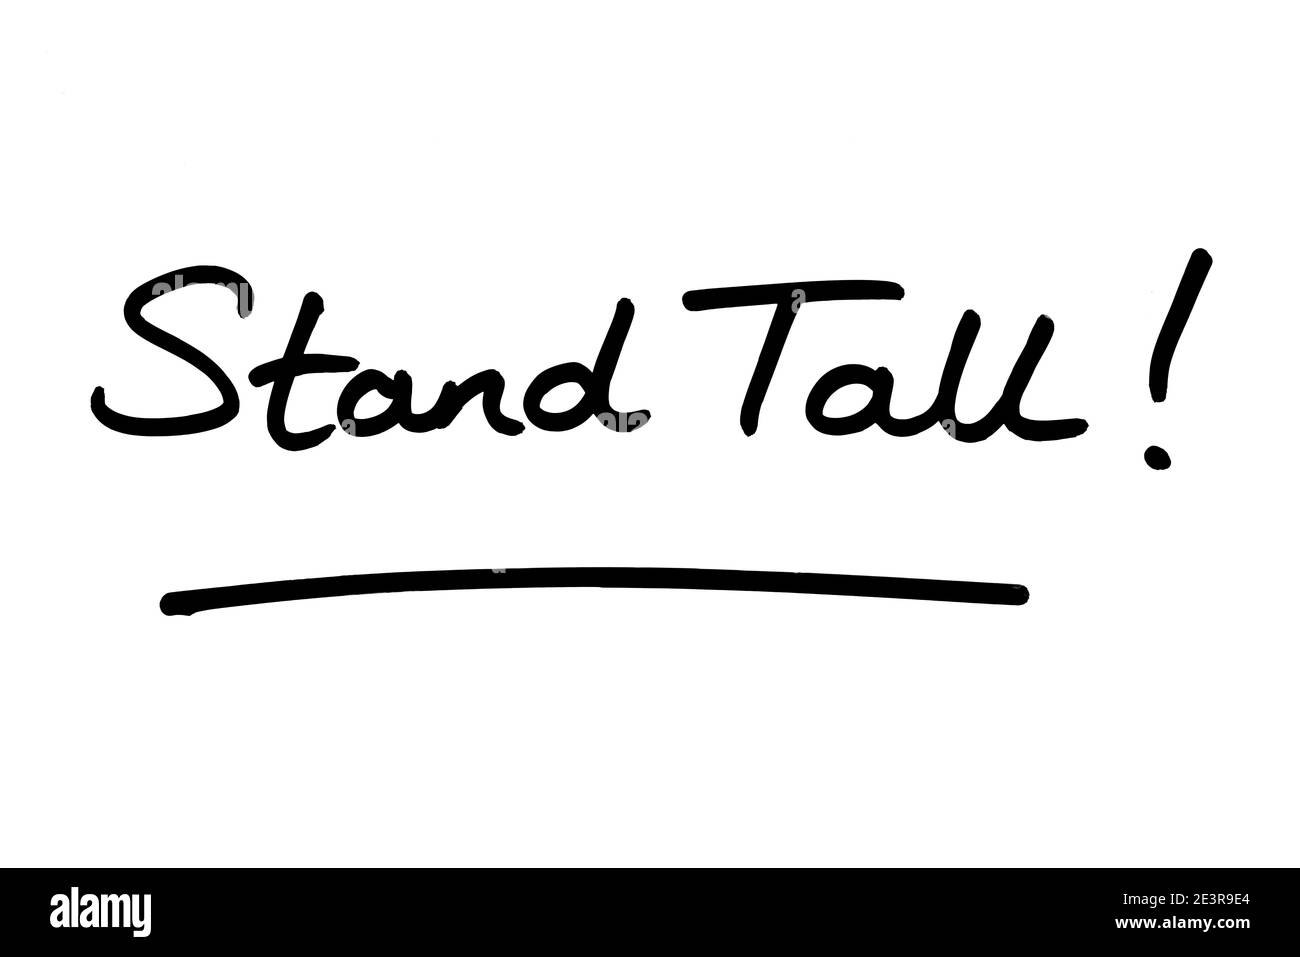 Stand Tall! handwritten on a white background. Stock Photo